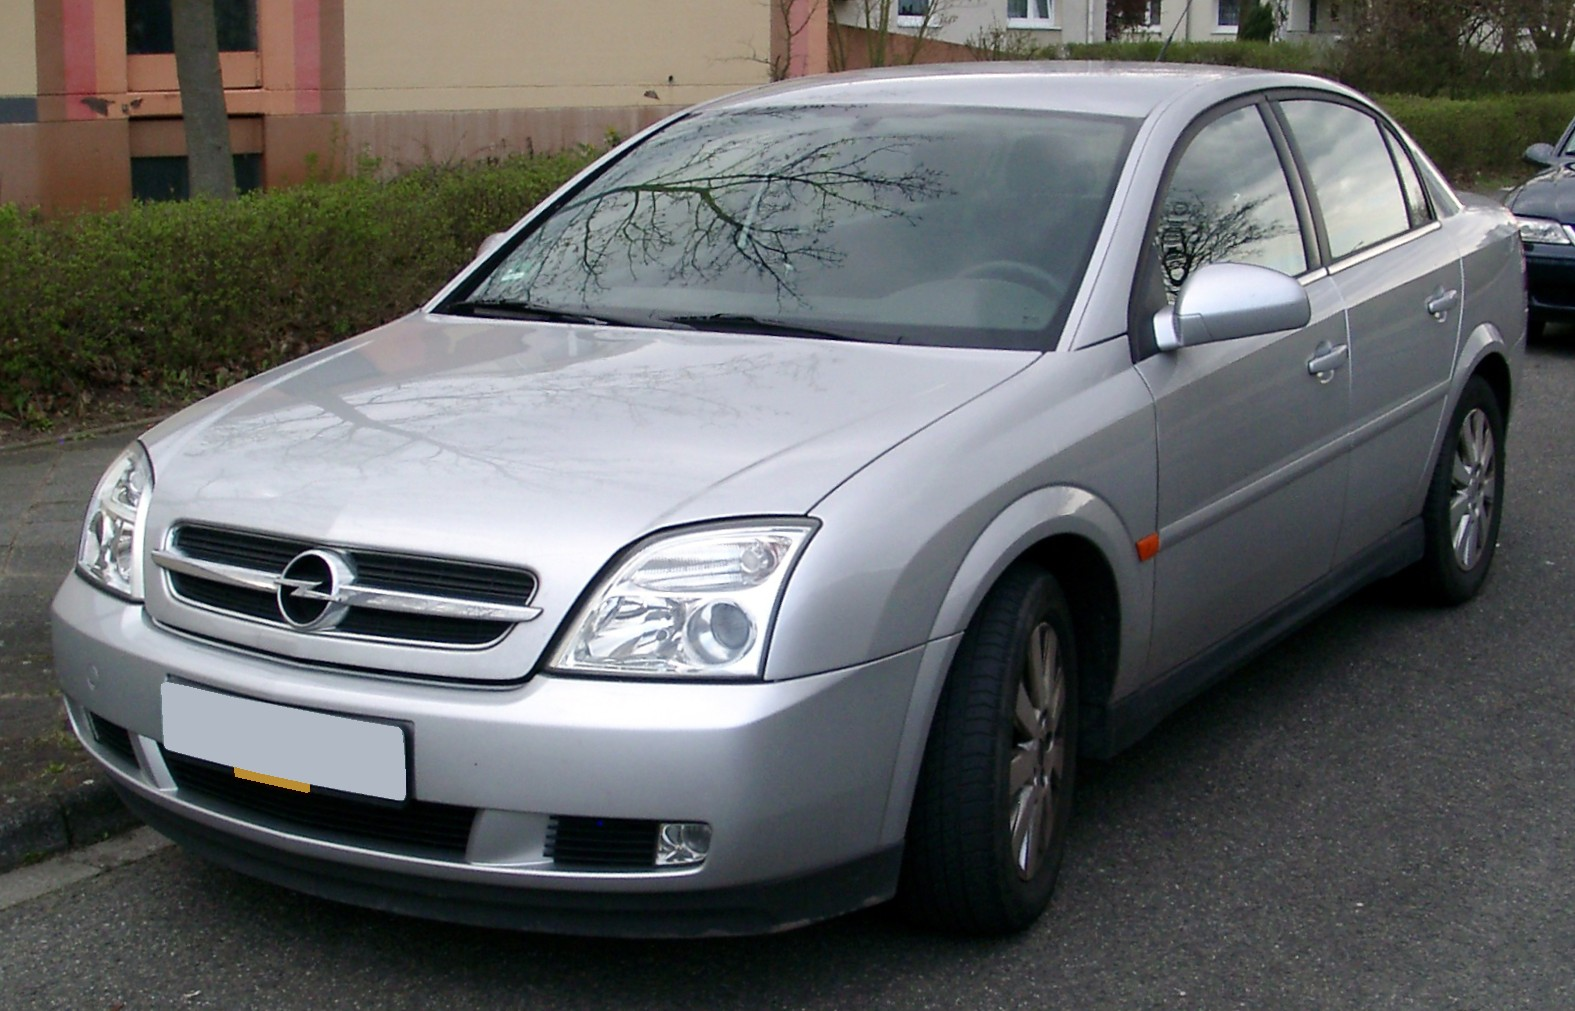 Pictures of holden vectra hatcback (b) 2006